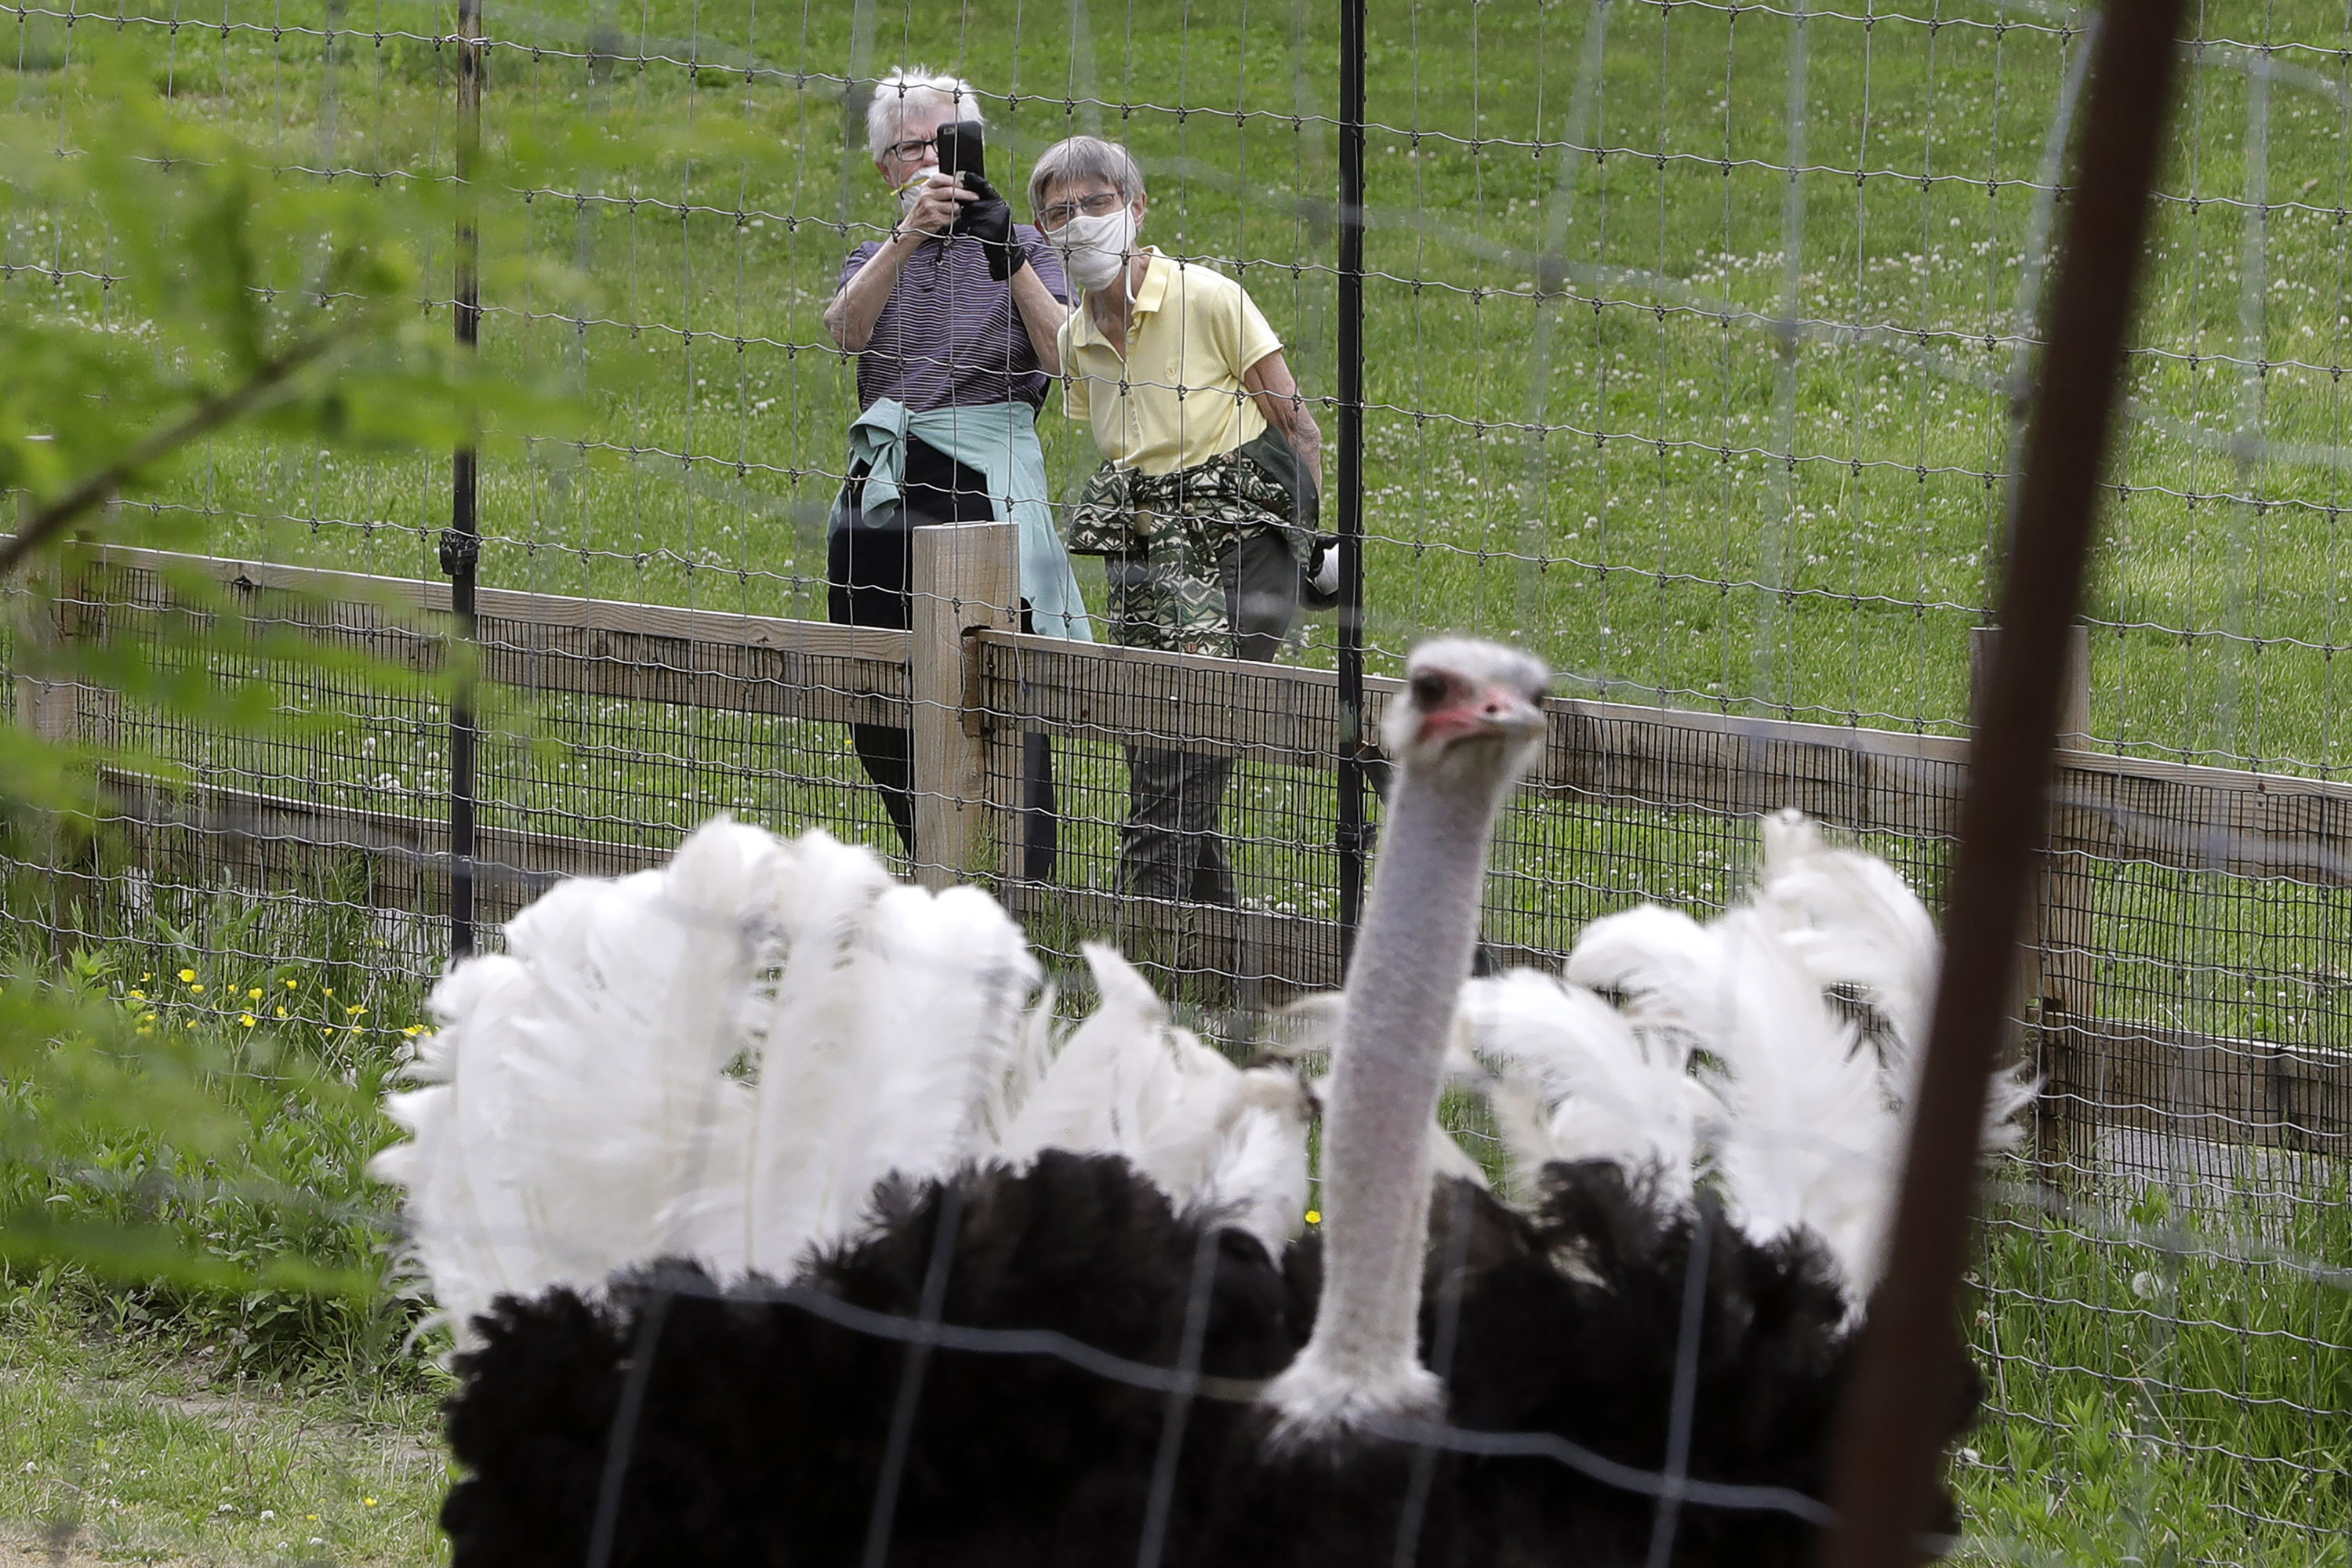 """Visitors to the Franklin Park Zoo make a recording of a male ostrich named """"Julius"""", May 28, 2020, in Boston. The zoo was open to members only Thursday for the first time in about two months due to concerns about COVID-19. (Steven Senne/AP)"""